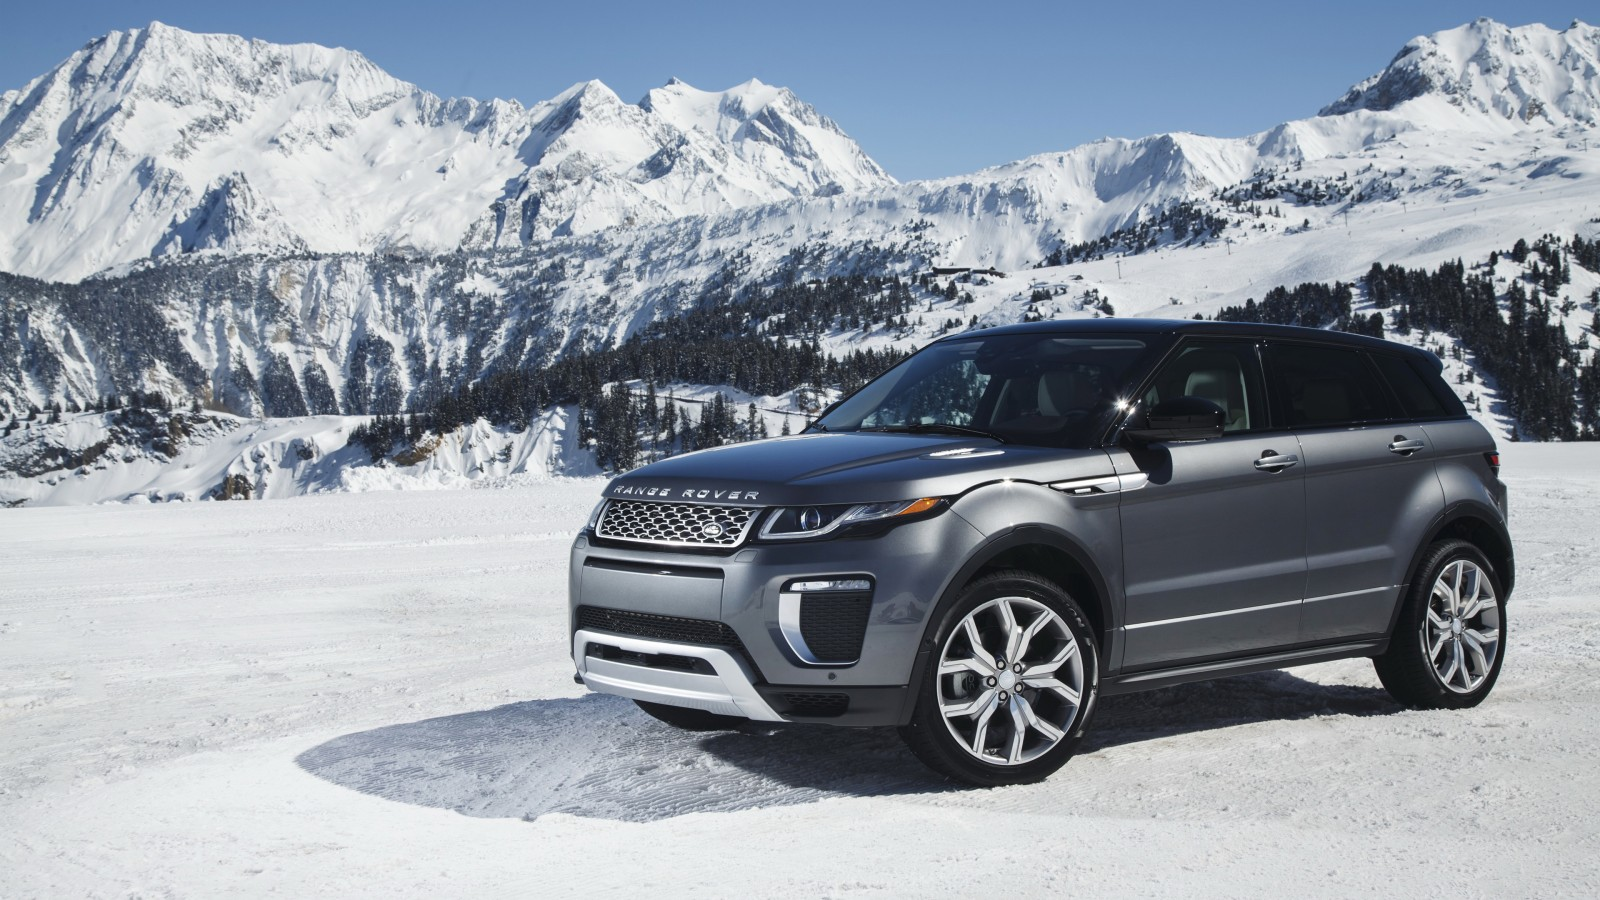 rover range evoque wallpapers autobiography land hd 4k 1600 1440 4usky mb resolutions hdcarwallpapers 1080 2160 ultra 1366 2560 1280